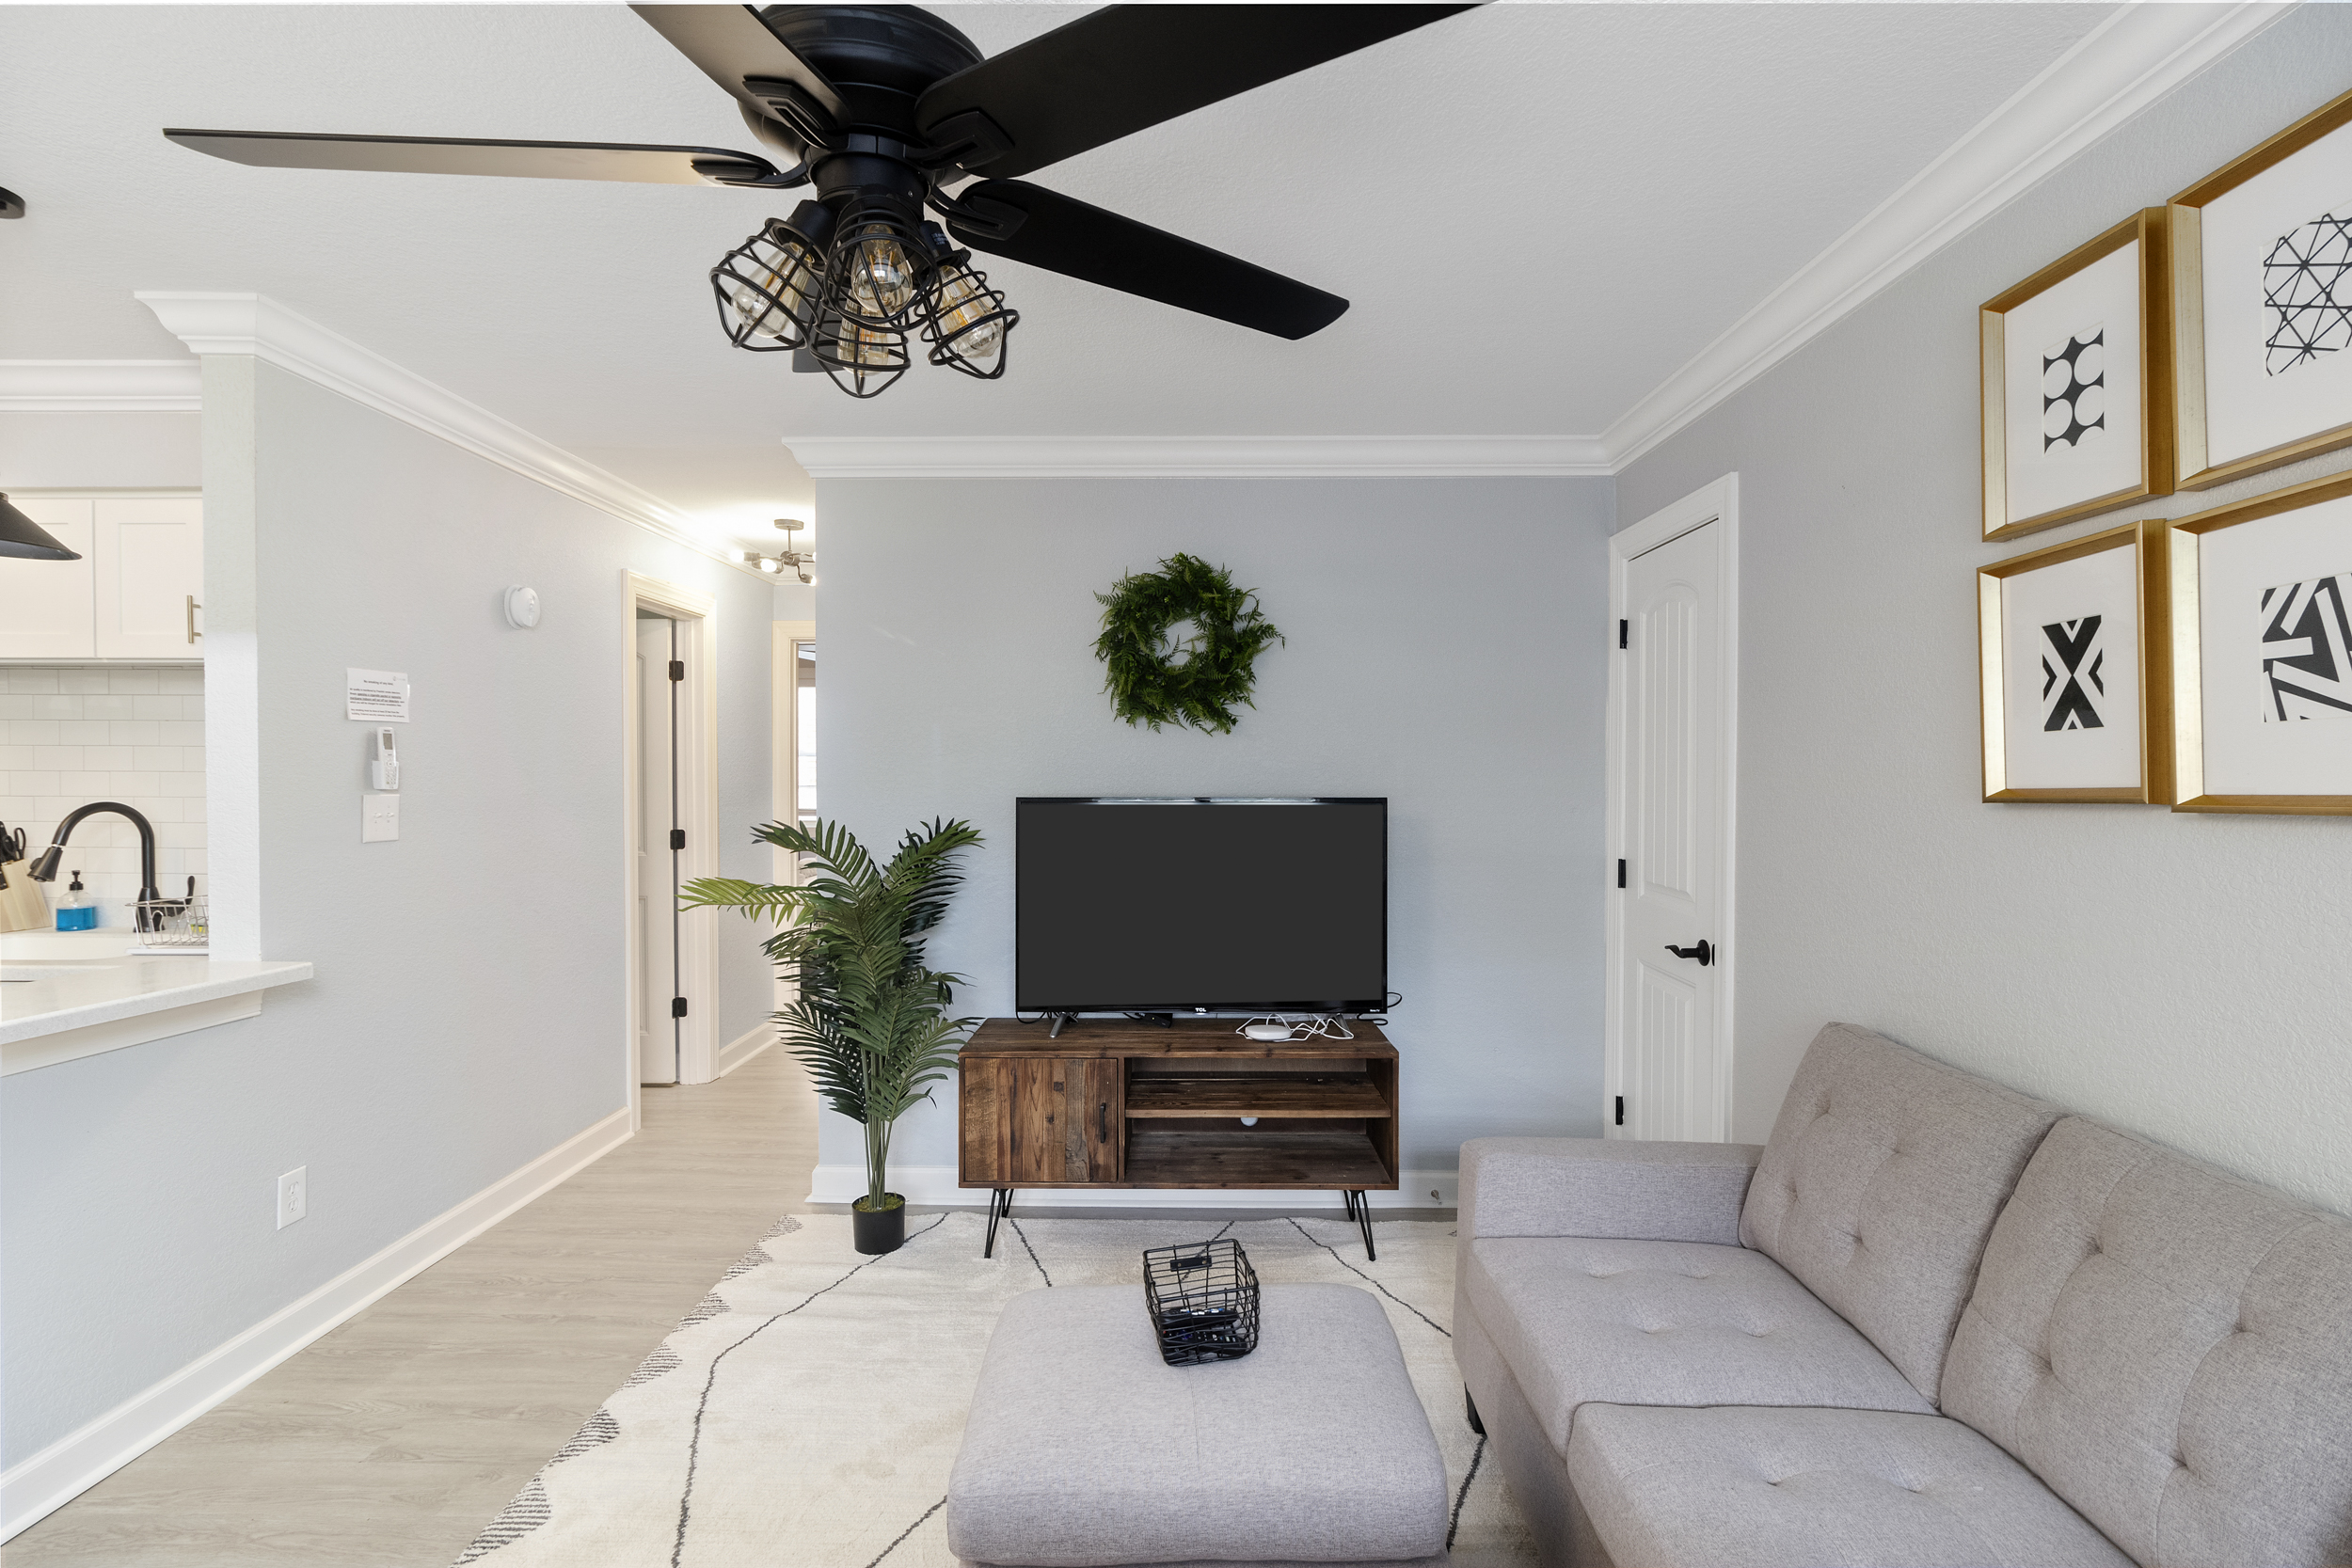 living room with a tv and green wreath hanging on the wall